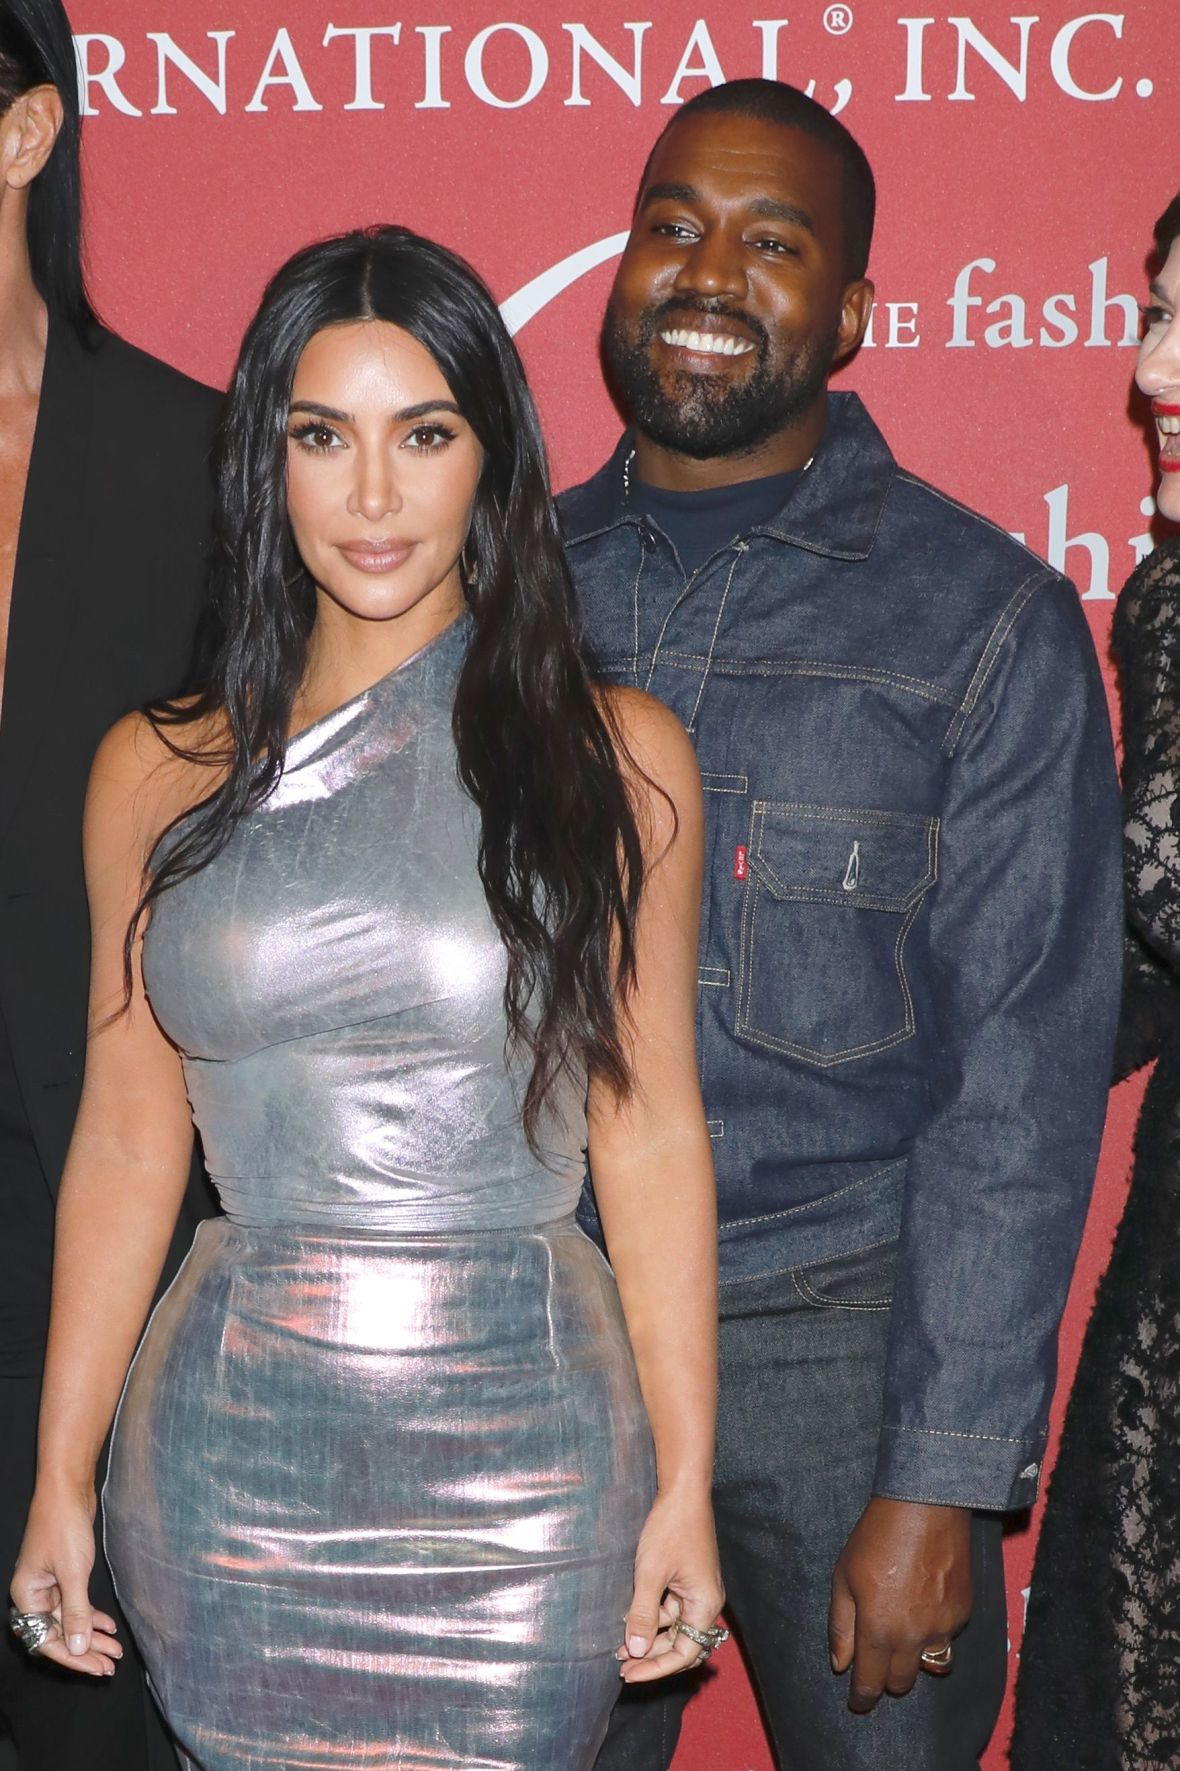 Kim Kardashian and Kanye Stay at Resort in Dominican Republic: Photos